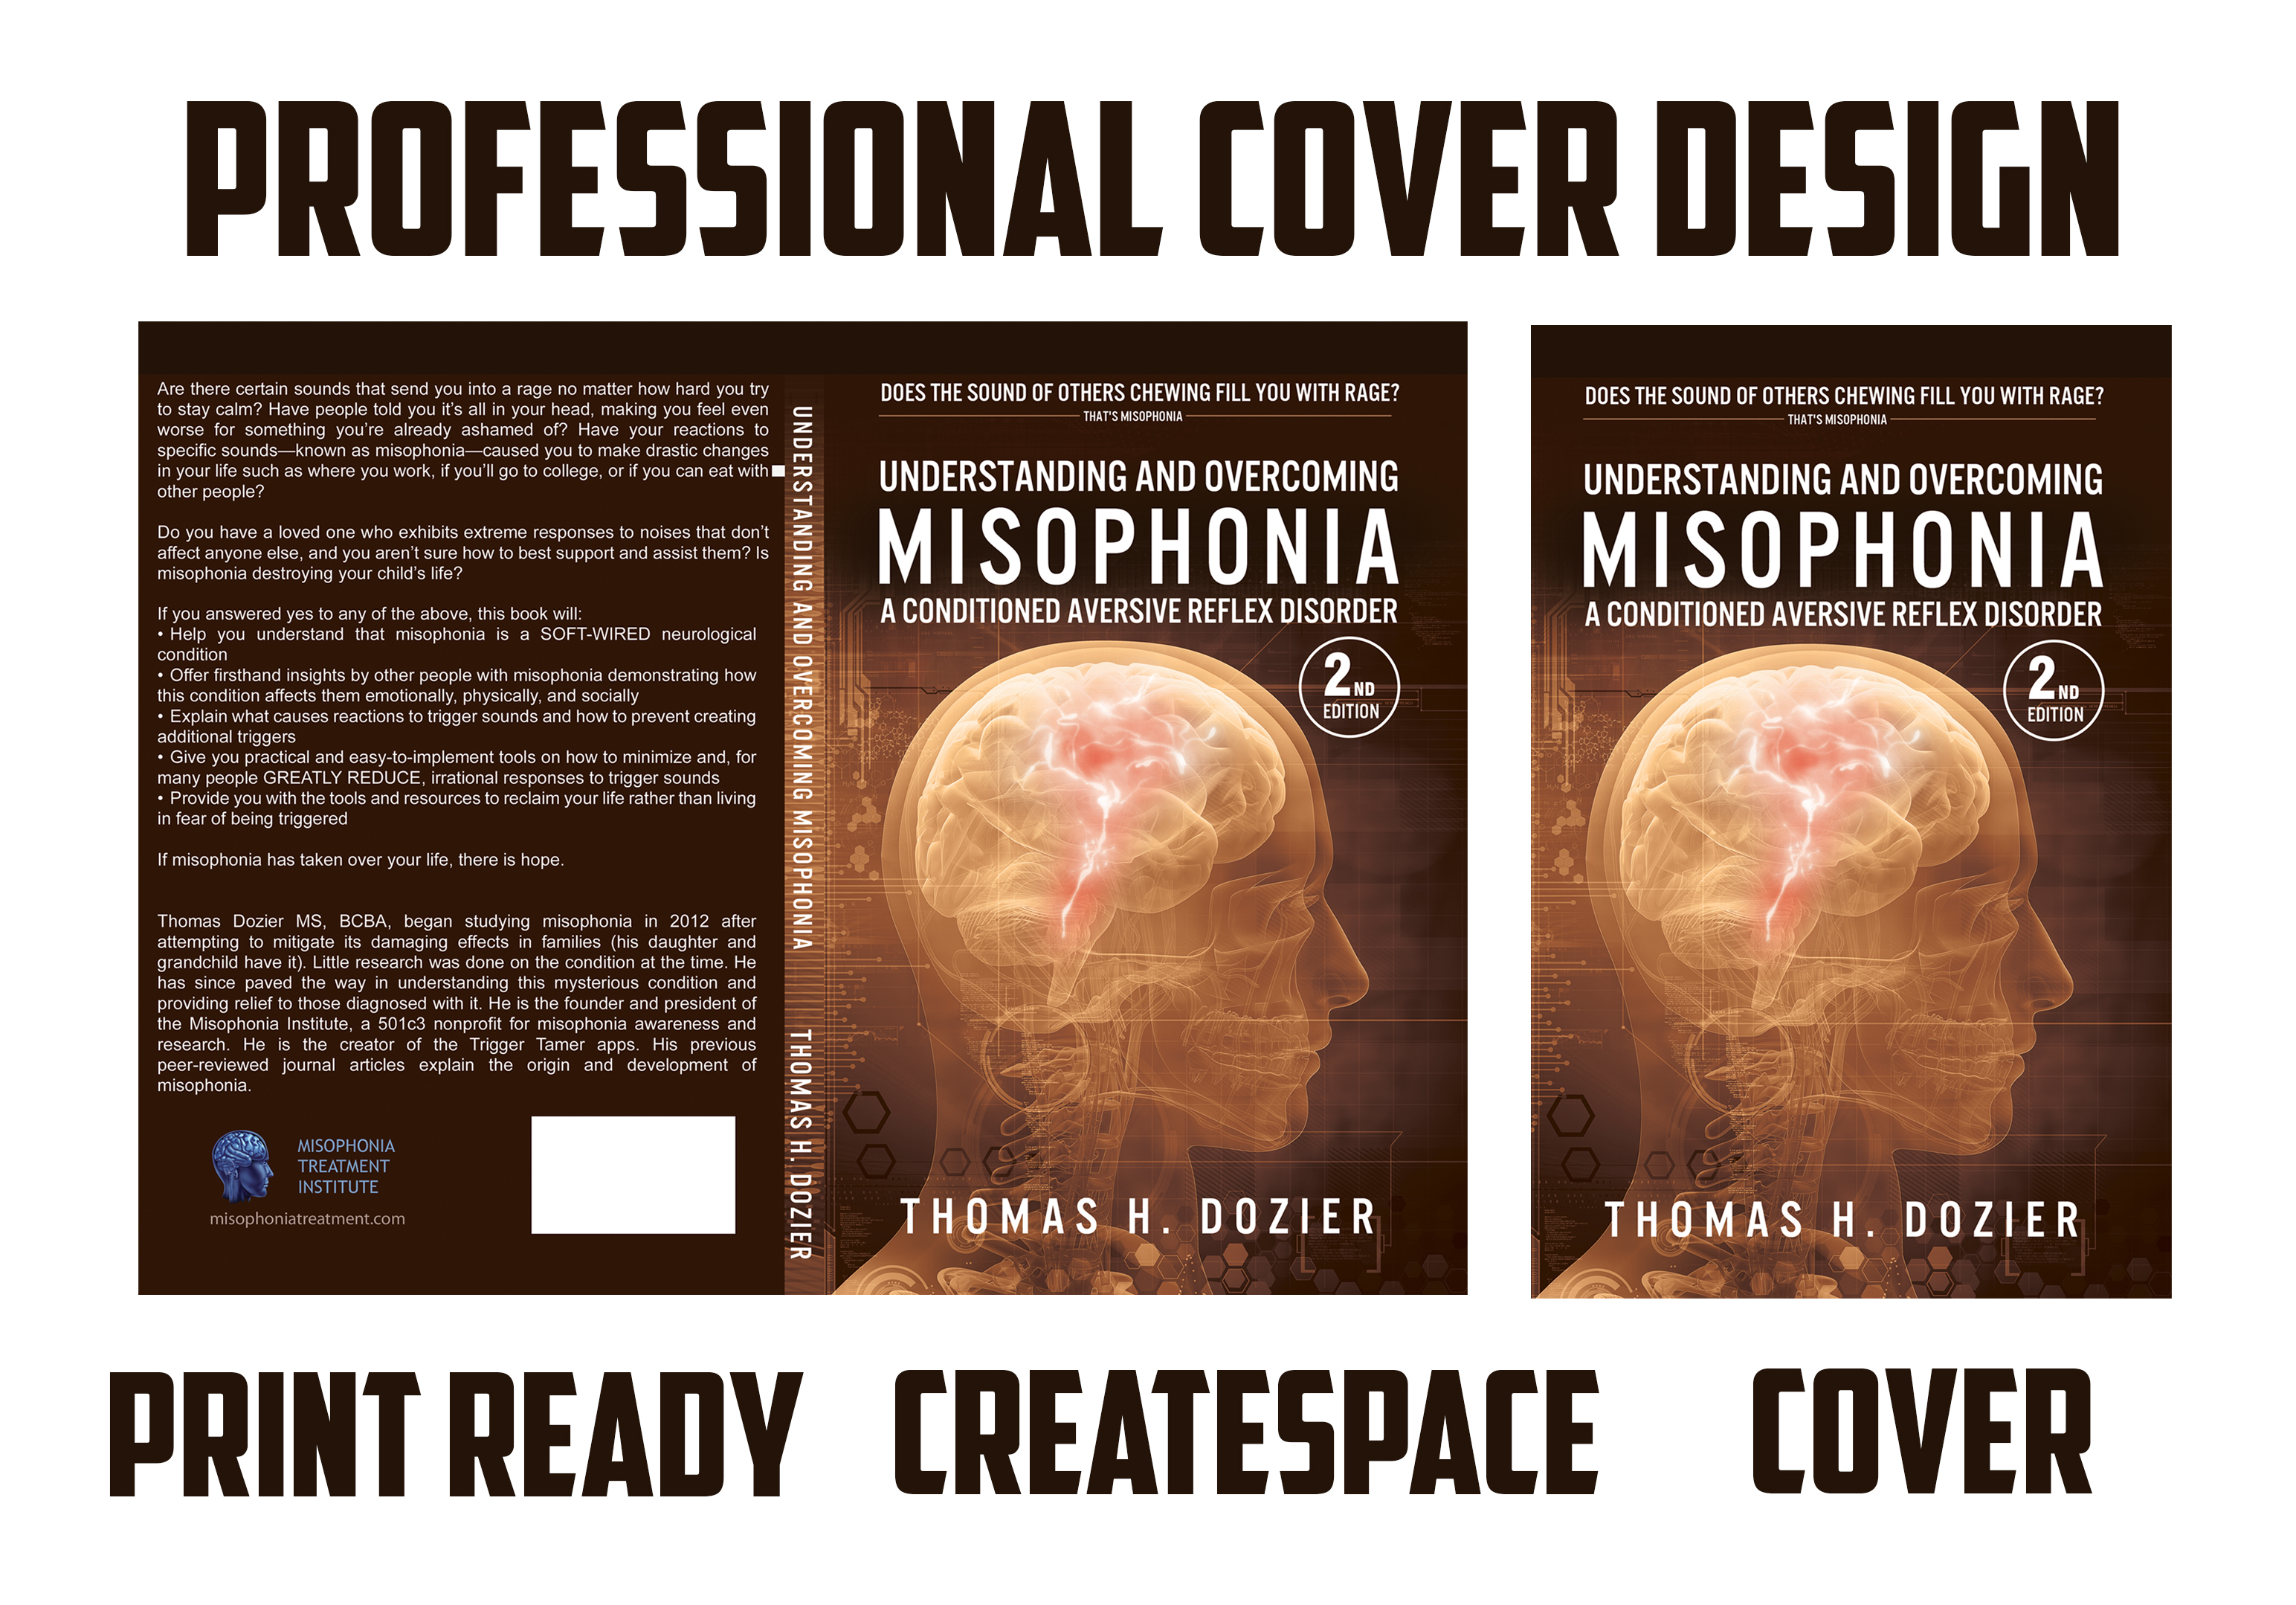 Design and formating of createspace,  Kindle and Ebook covers.